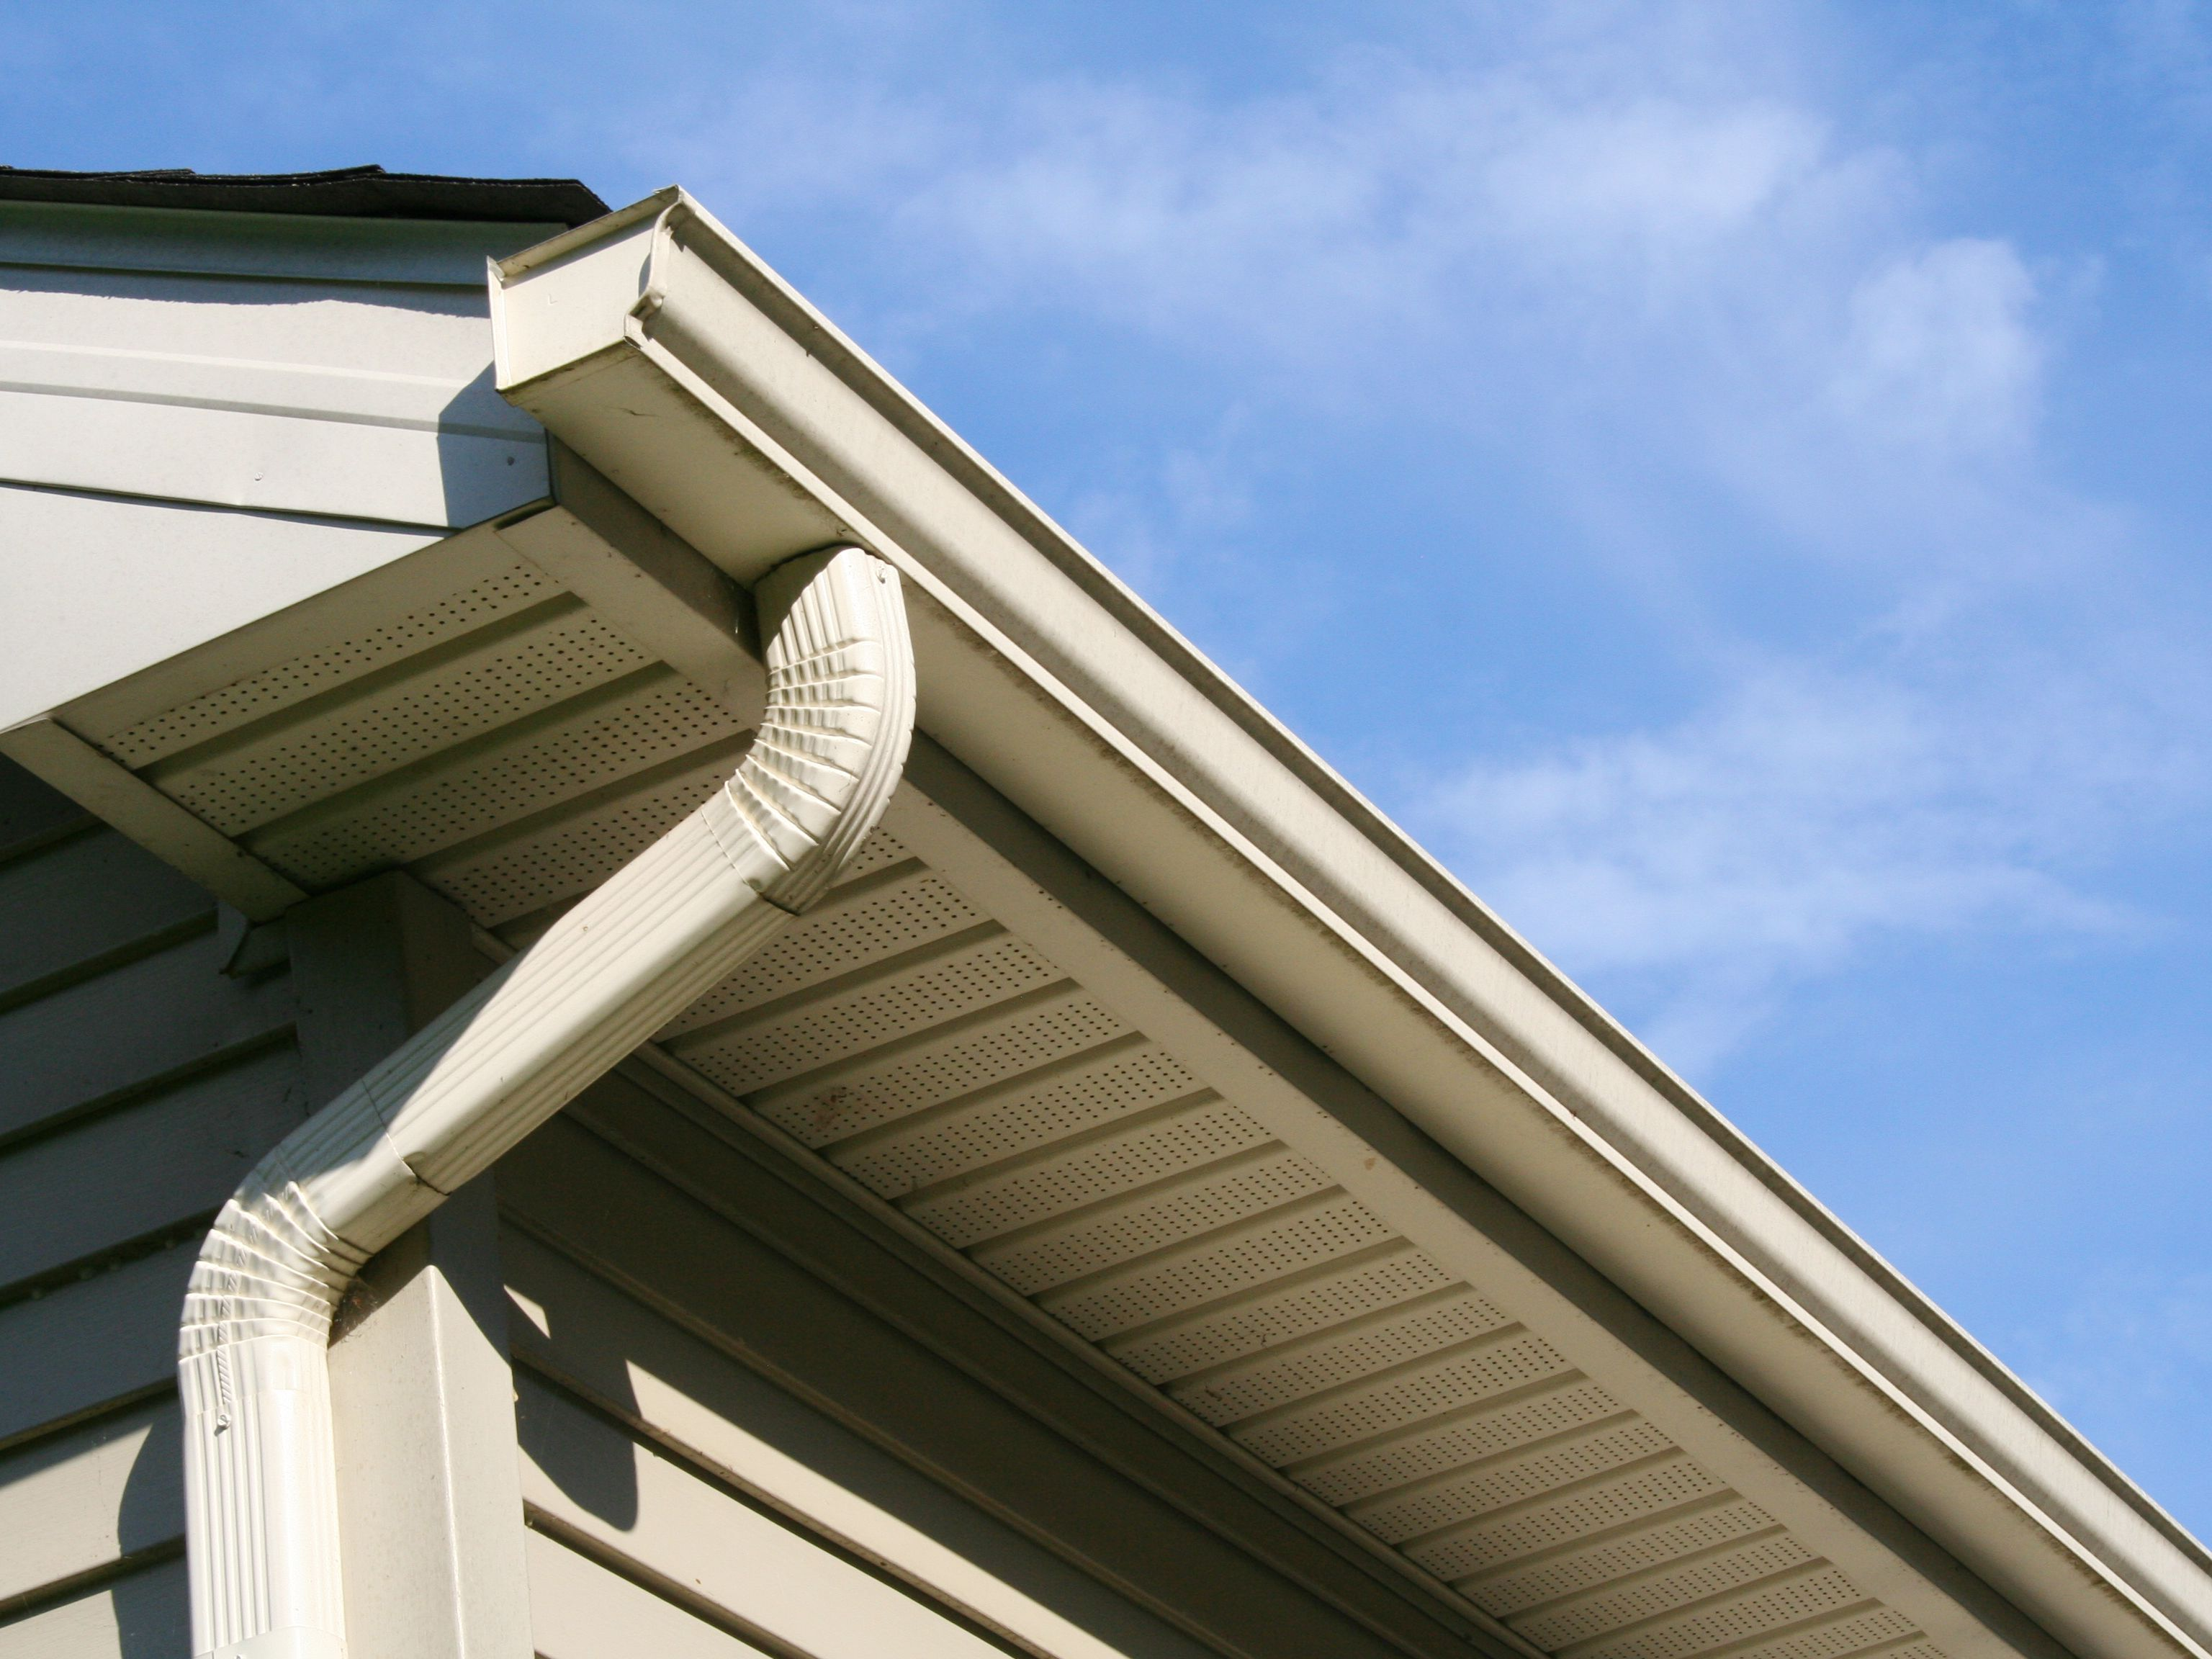 Know Your Home A Quick Look At Gutter Styles In 2020 How To Install Gutters Gutters Cleaning Gutters